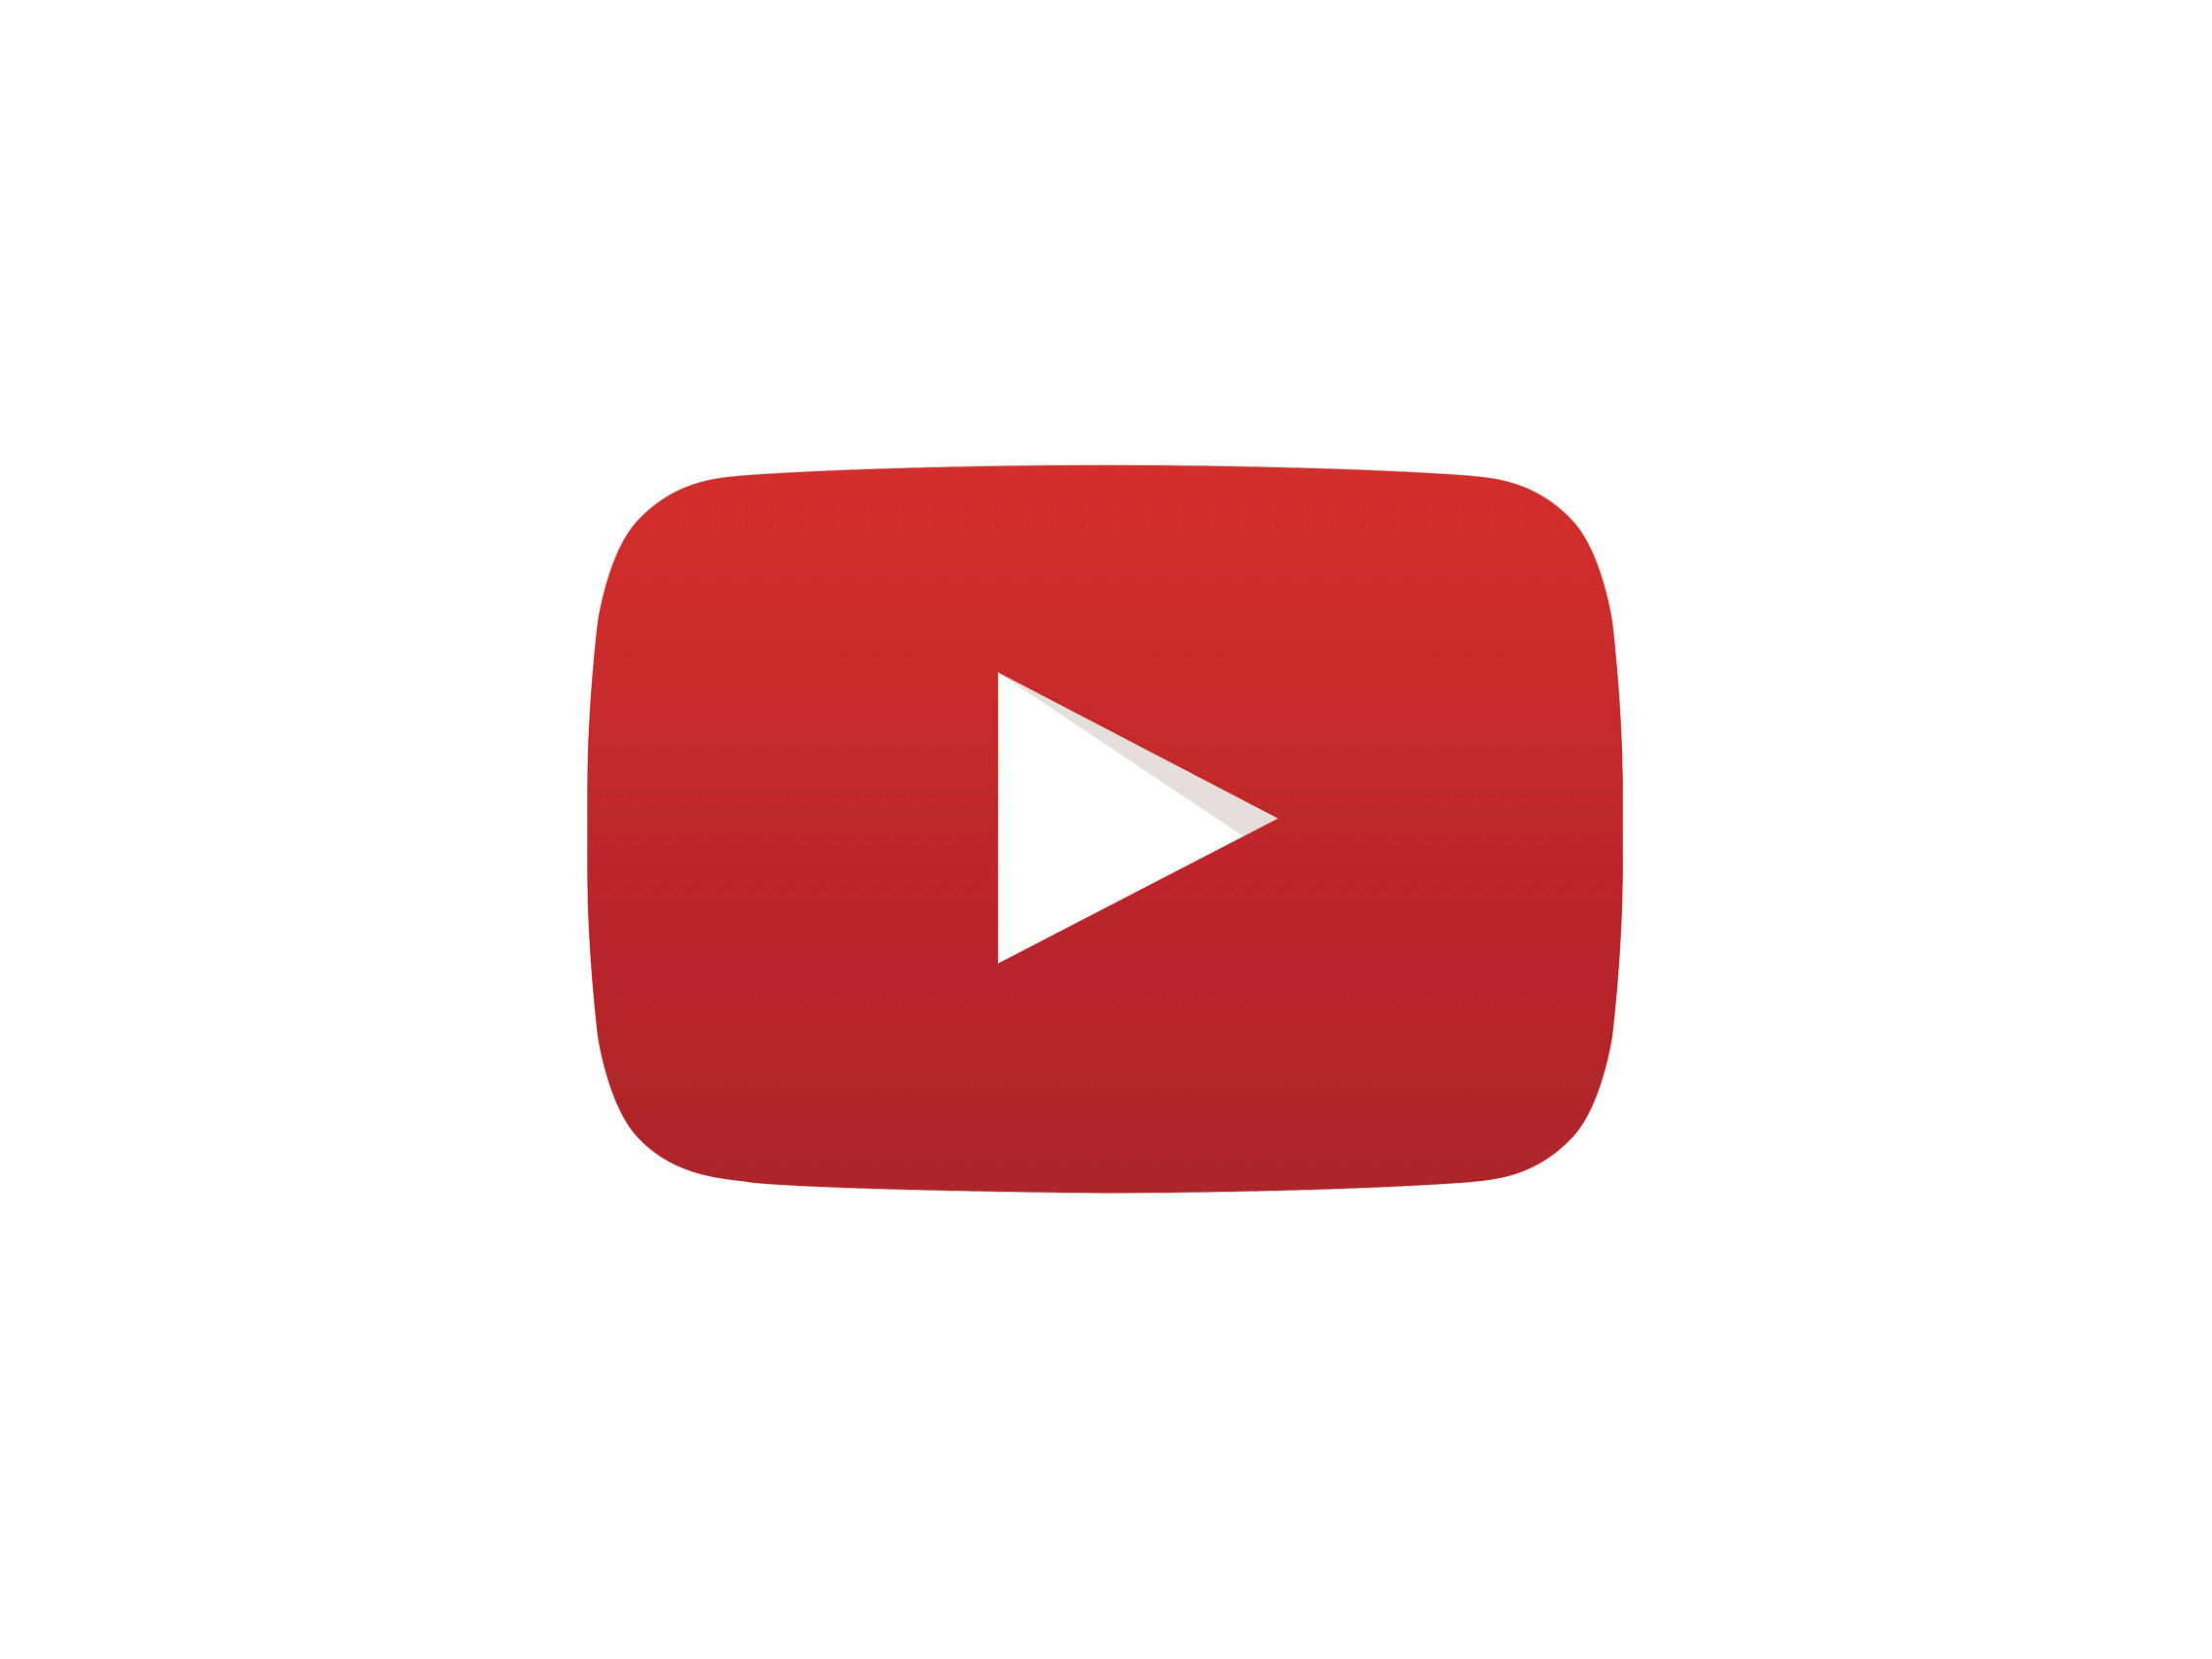 Youtube clipart Icon download free PNG PNG